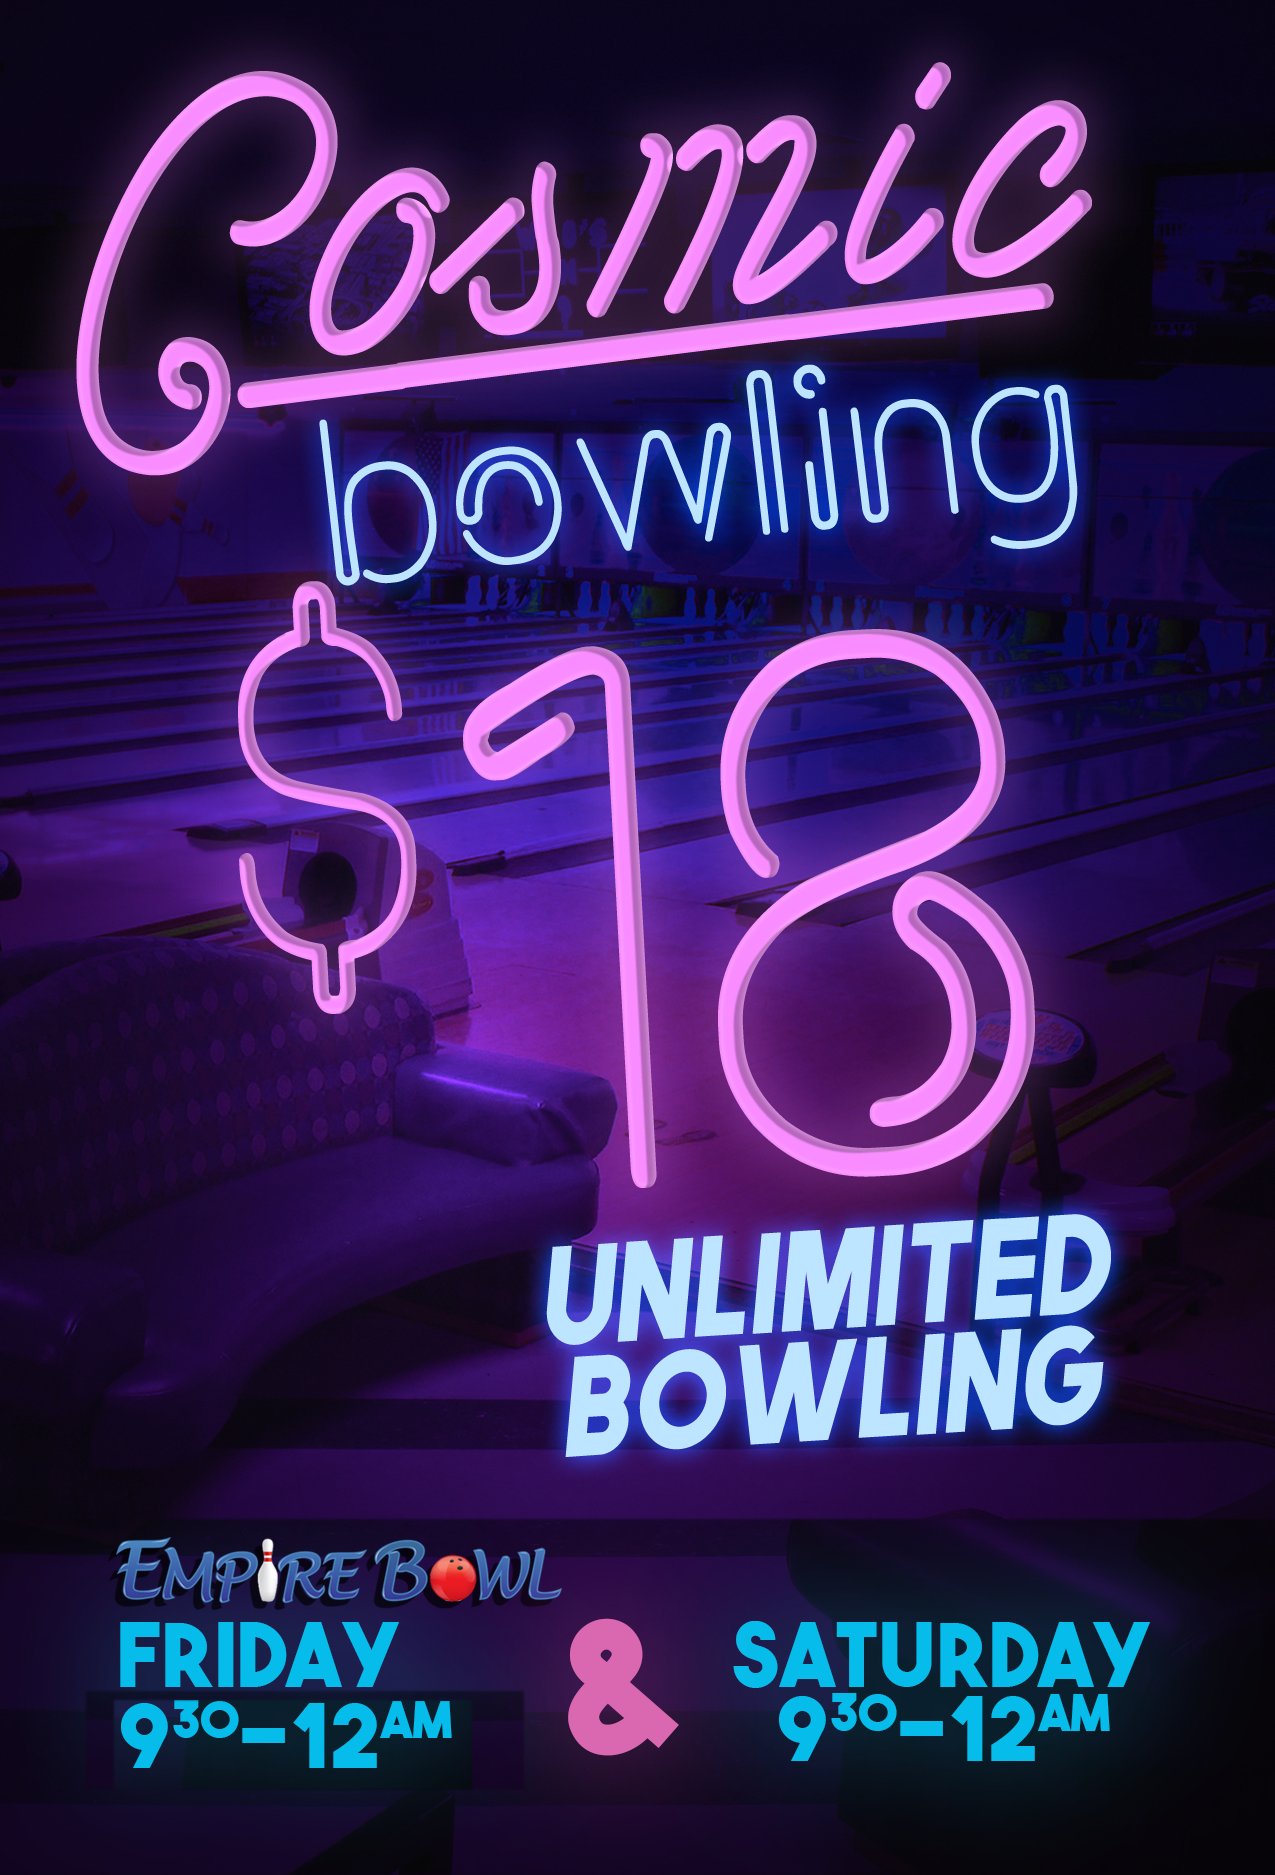 cosmicbowling.png